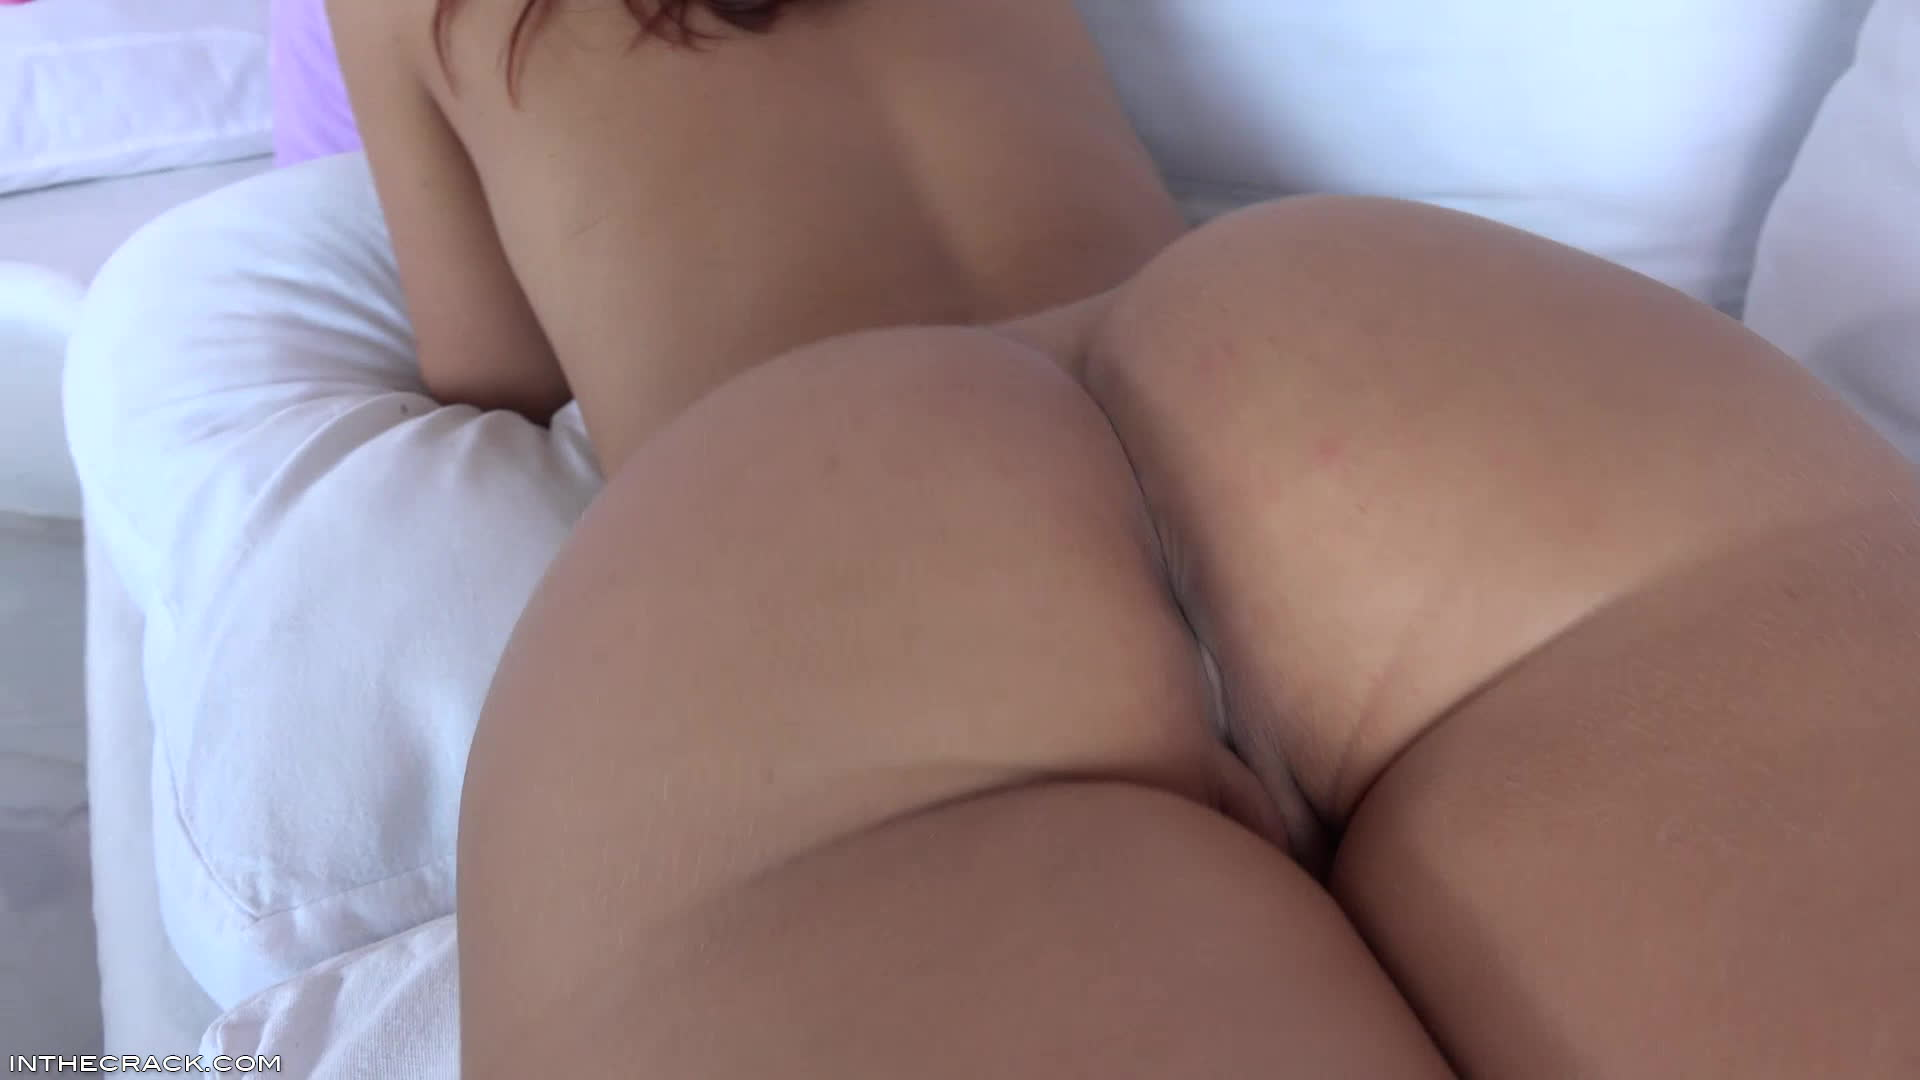 Naked girl jiggly ass gifs, jessica rabbits nude tits